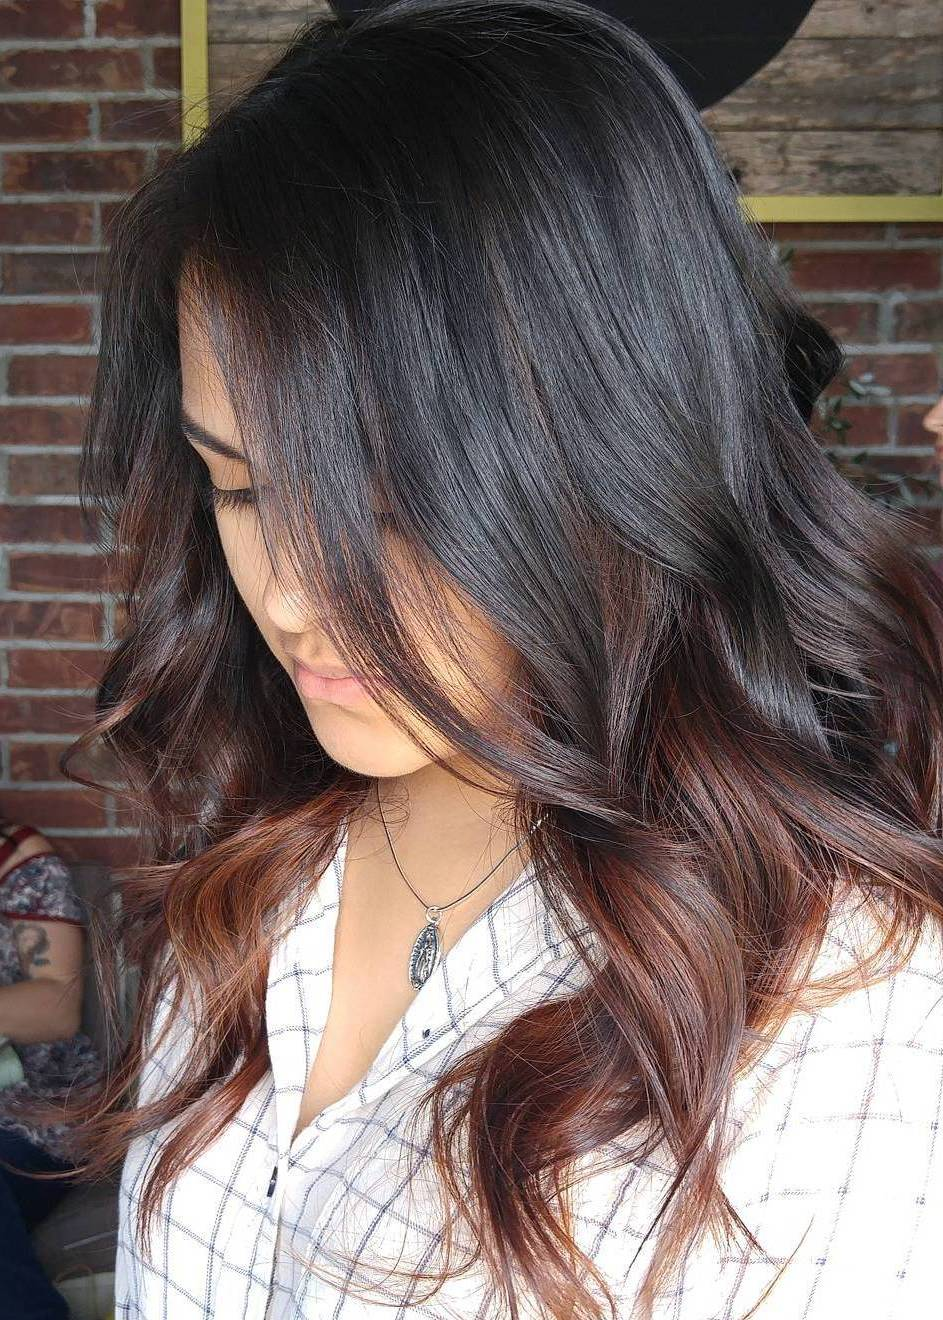 Black hair with blonde ends - To Toned Brown Hair